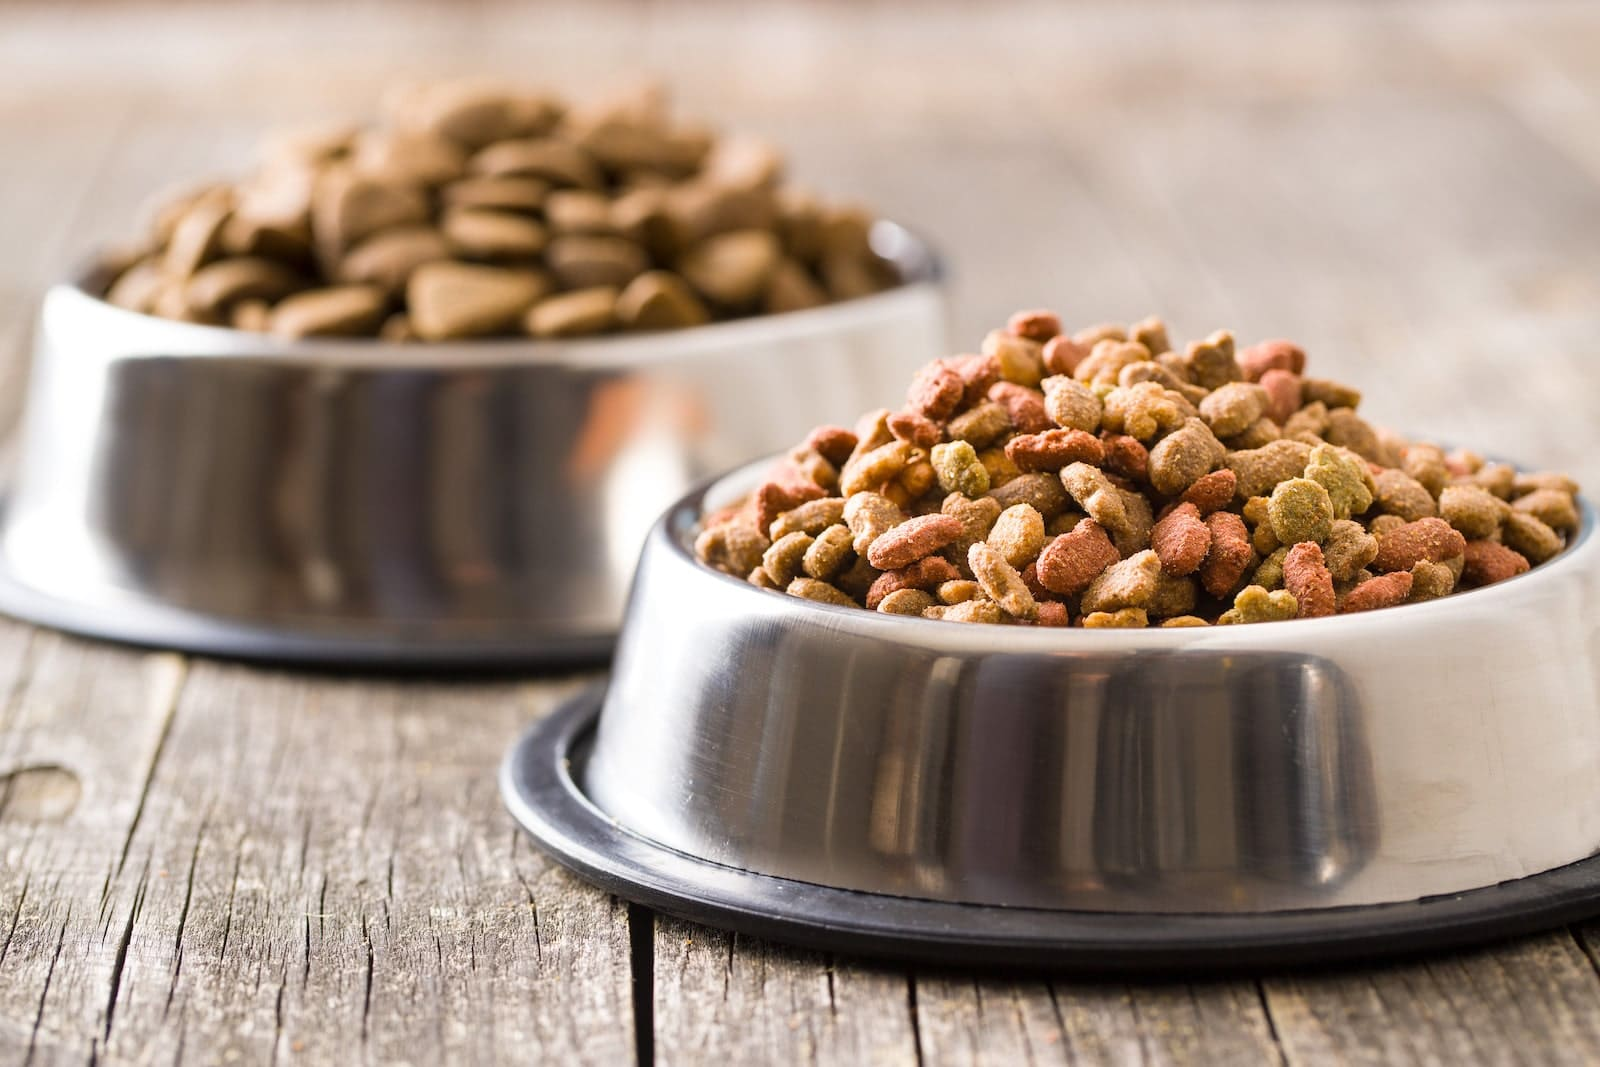 Sales of Pet Food Growing Faster Than Packaged Human Food Sales